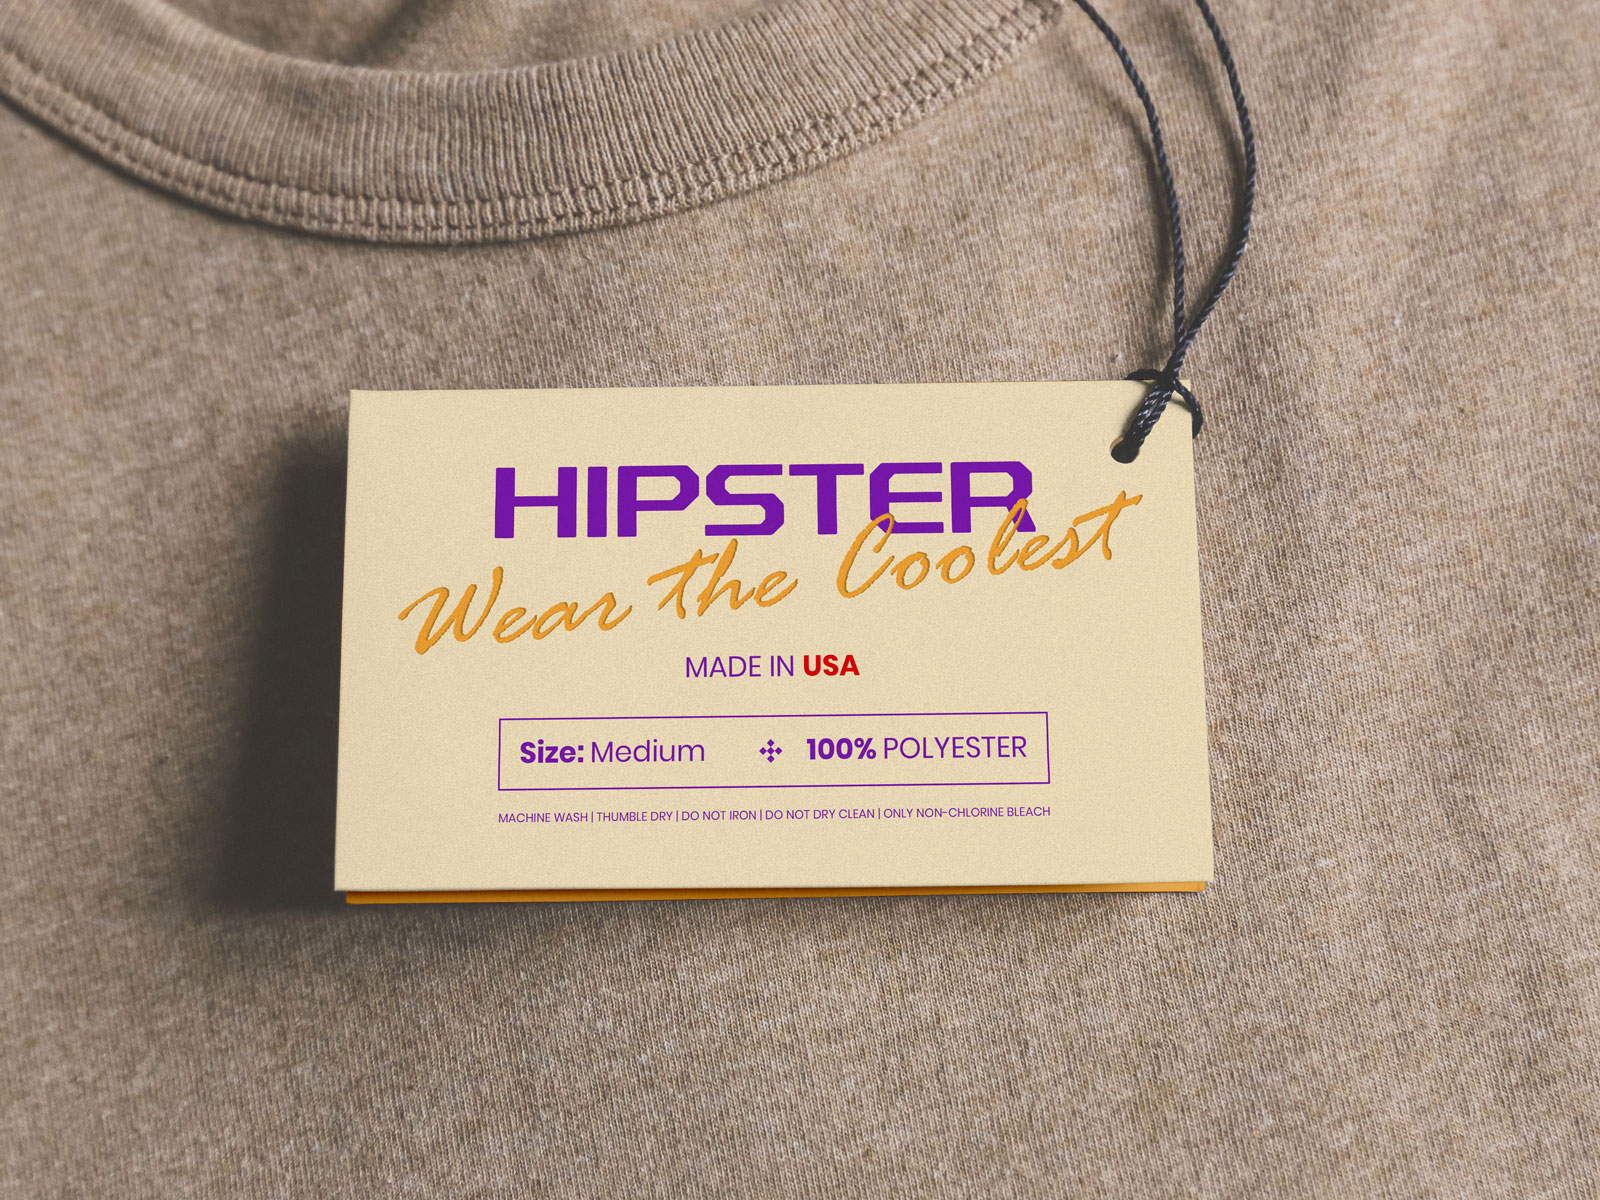 Free-Clothing-Tag-Mockup-PSD-3